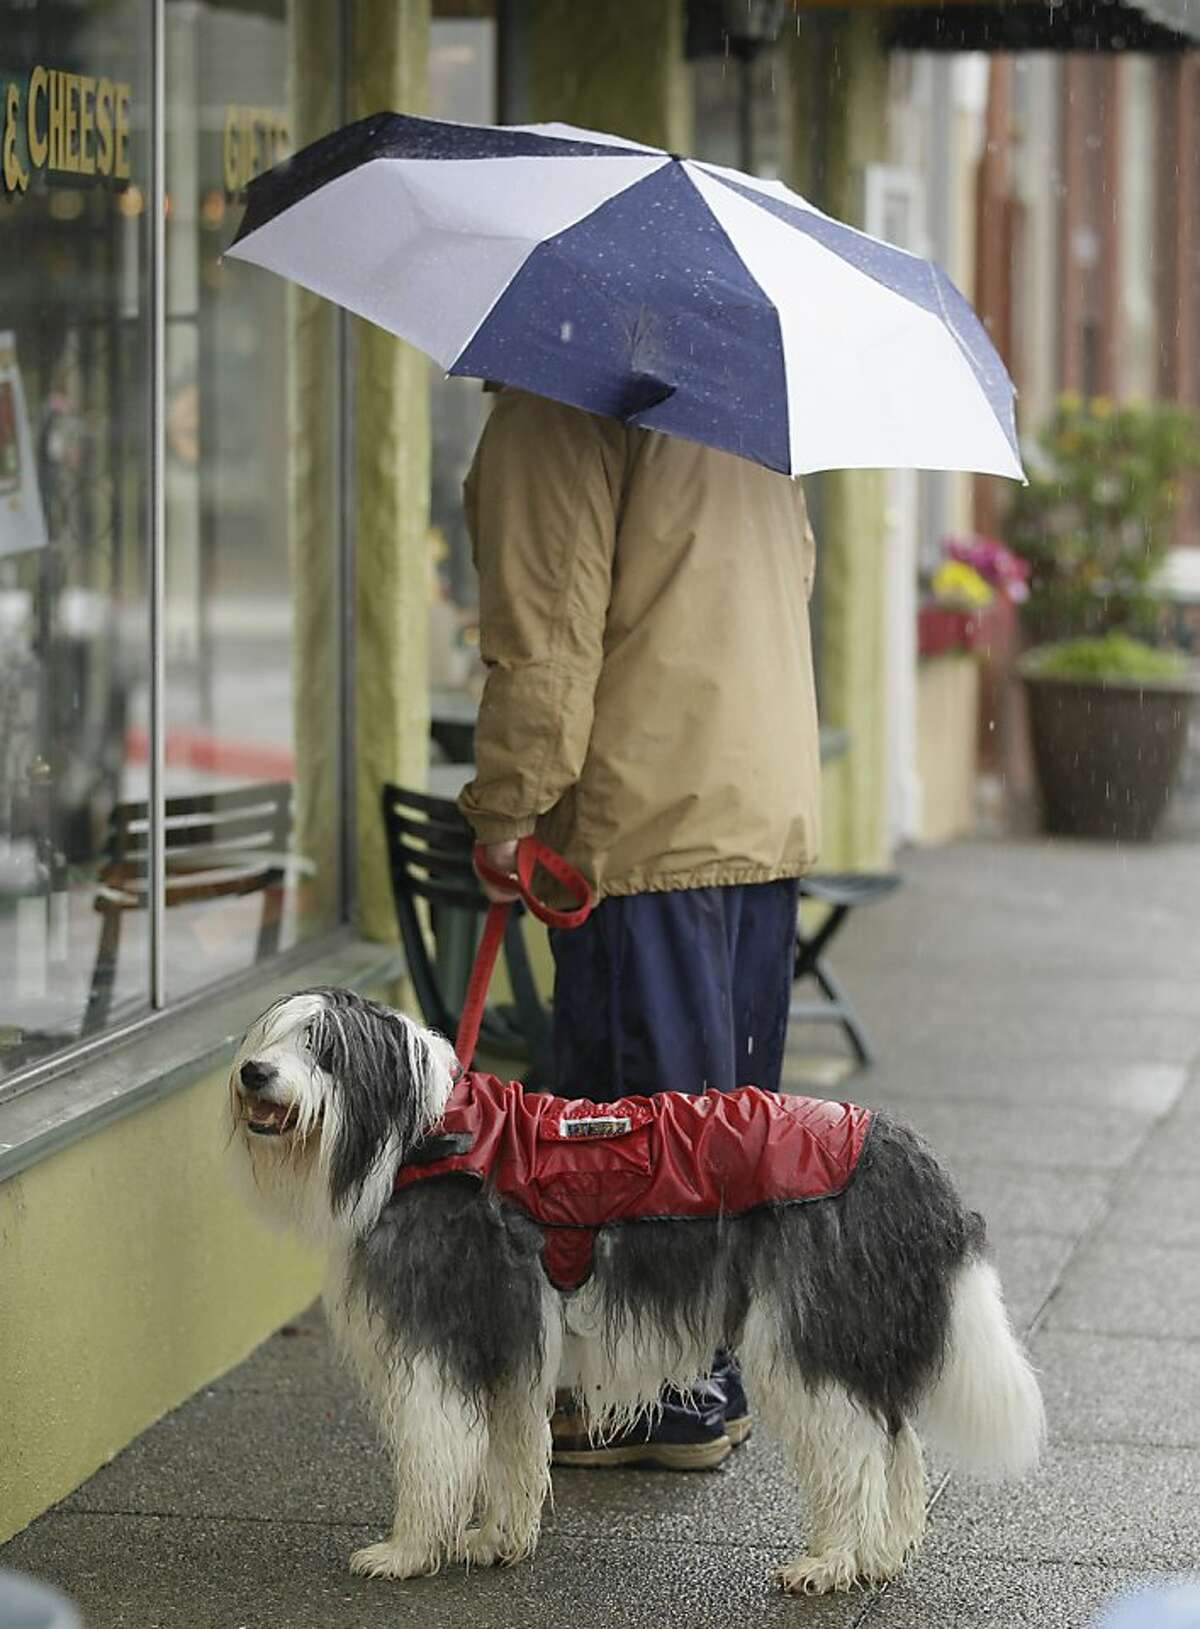 Wally, a Bearded Collie, gets brief cover from the rain as his owner, Bob Stroman, looks into a shop window during a walk in Sausalito, Calif., Wednesday, March 14, 2012. A late winter storm has brought heavy rain and winds to Central and Northern California and more rain is on the way over the next couple of days and the weekend, forecasters say, spelling good news for what has been an unusually dry winter.